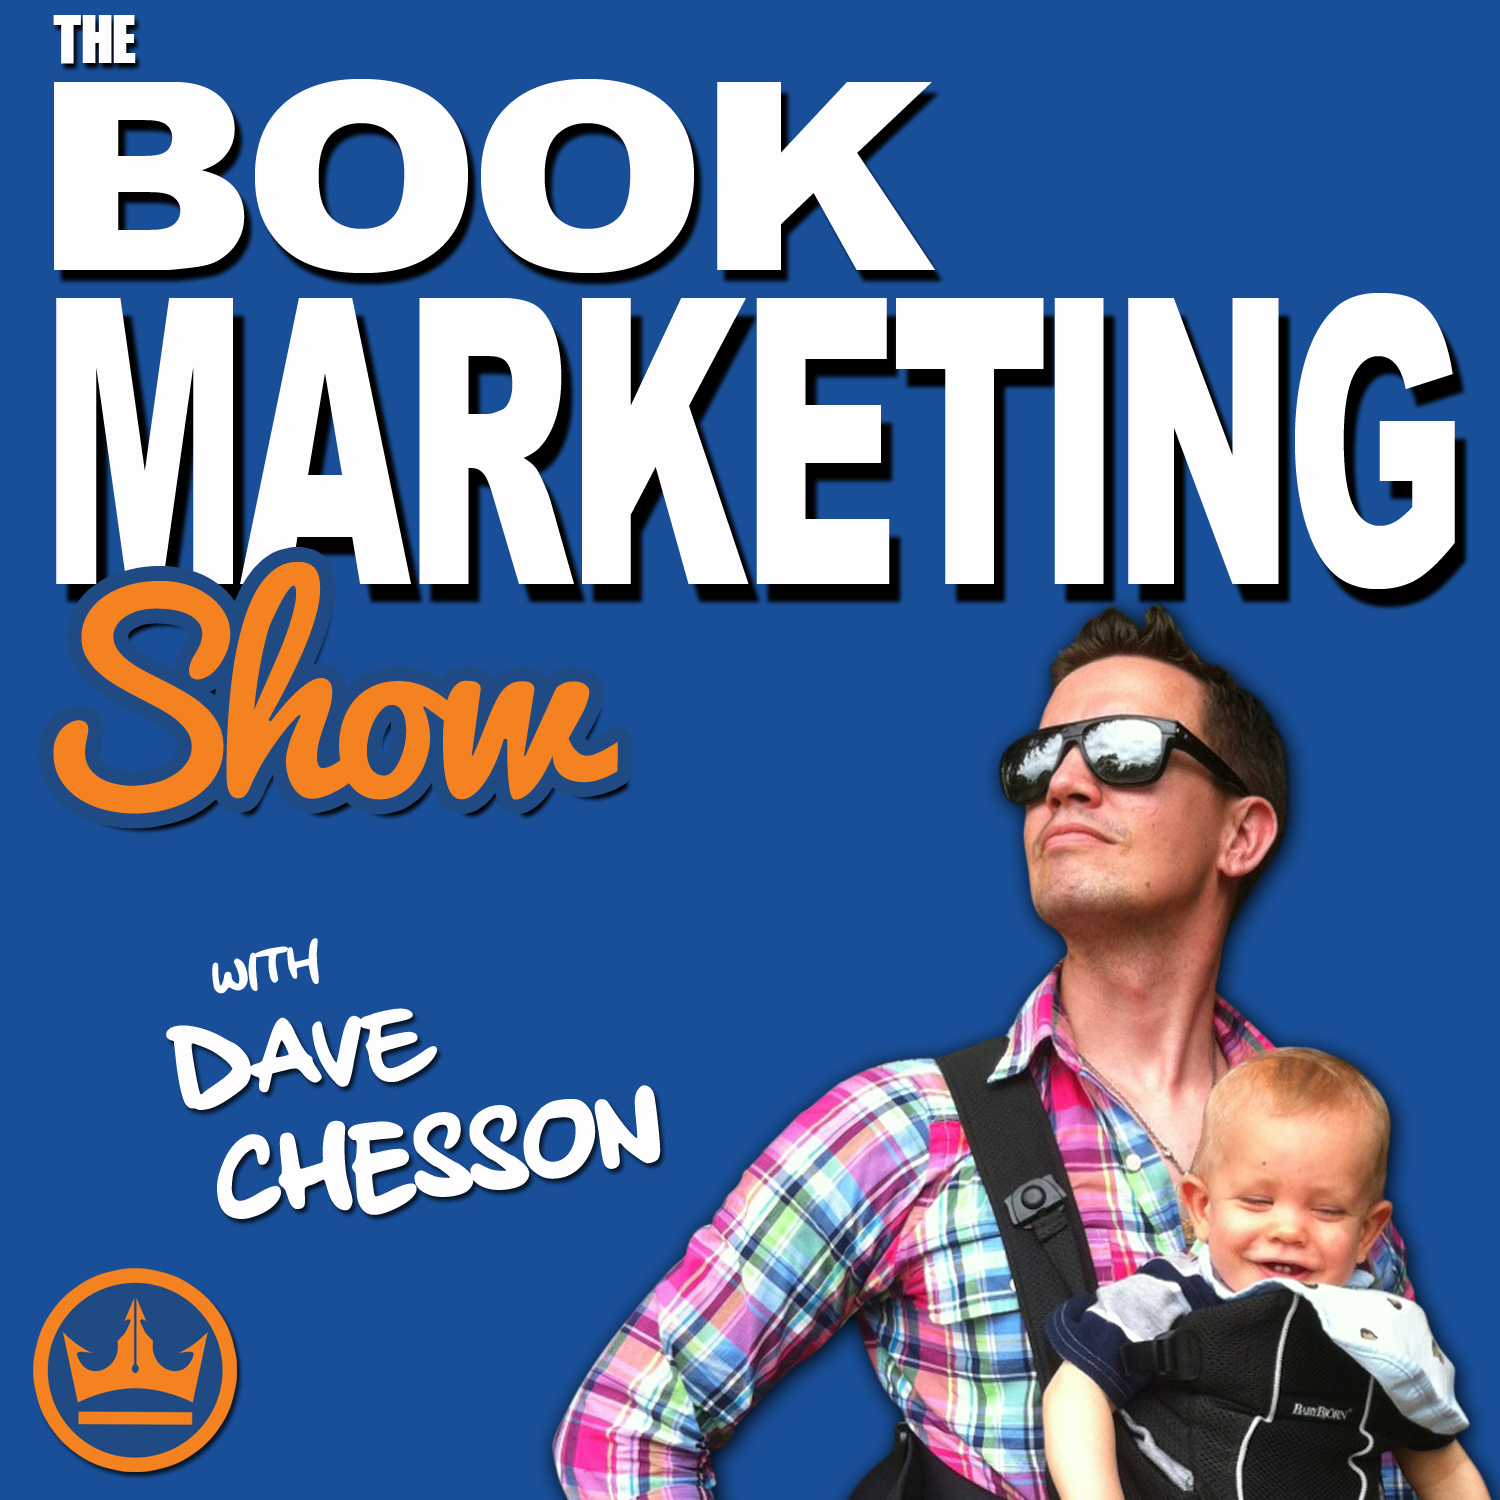 Book Marketing Show Podcast with Dave Chesson show art